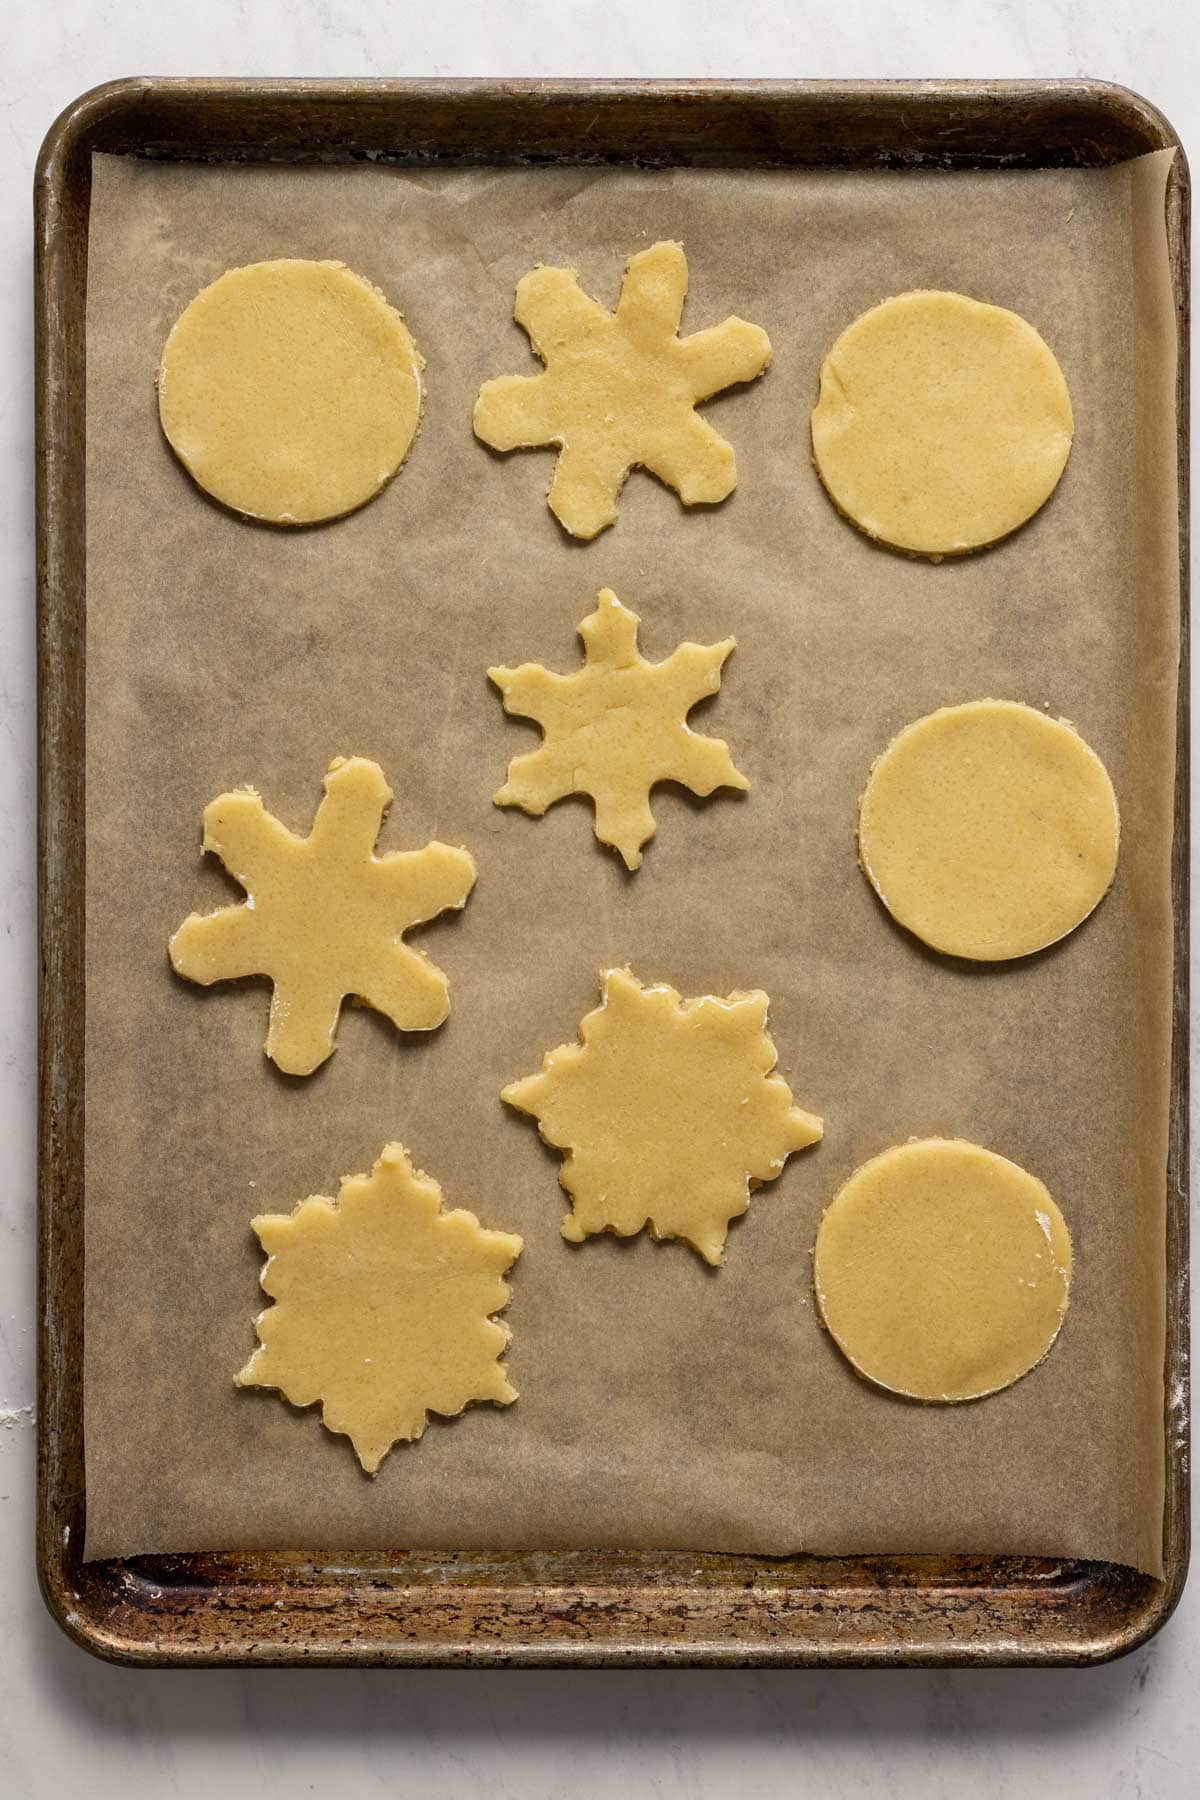 Almond shortbread cookies on a sheet pan